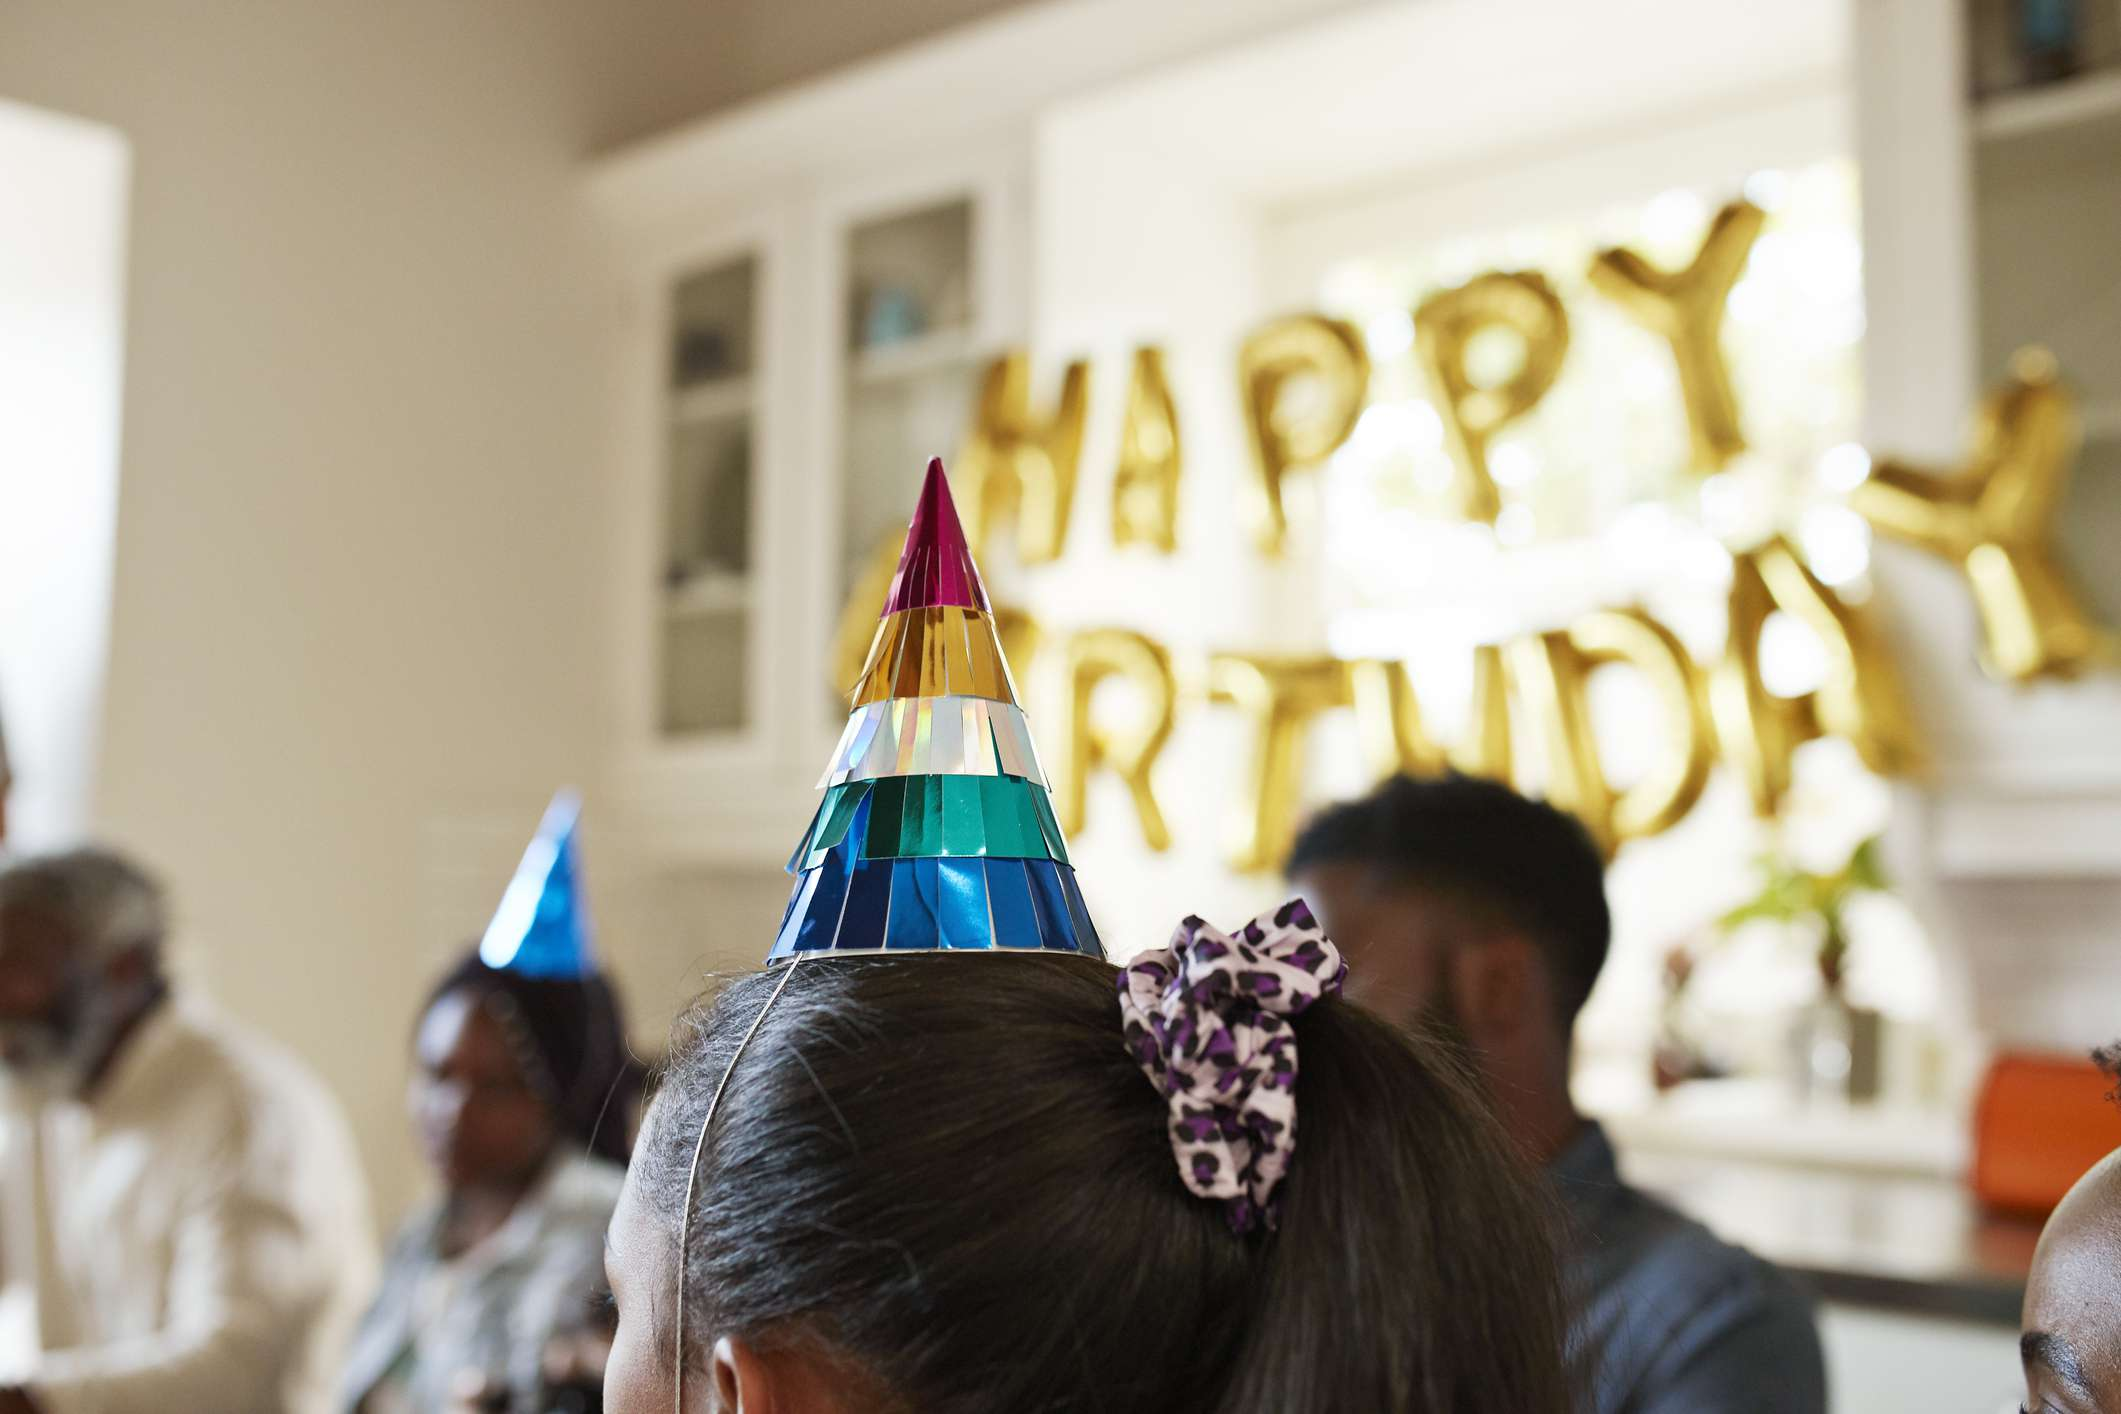 People wearing party hats at a birthday party.